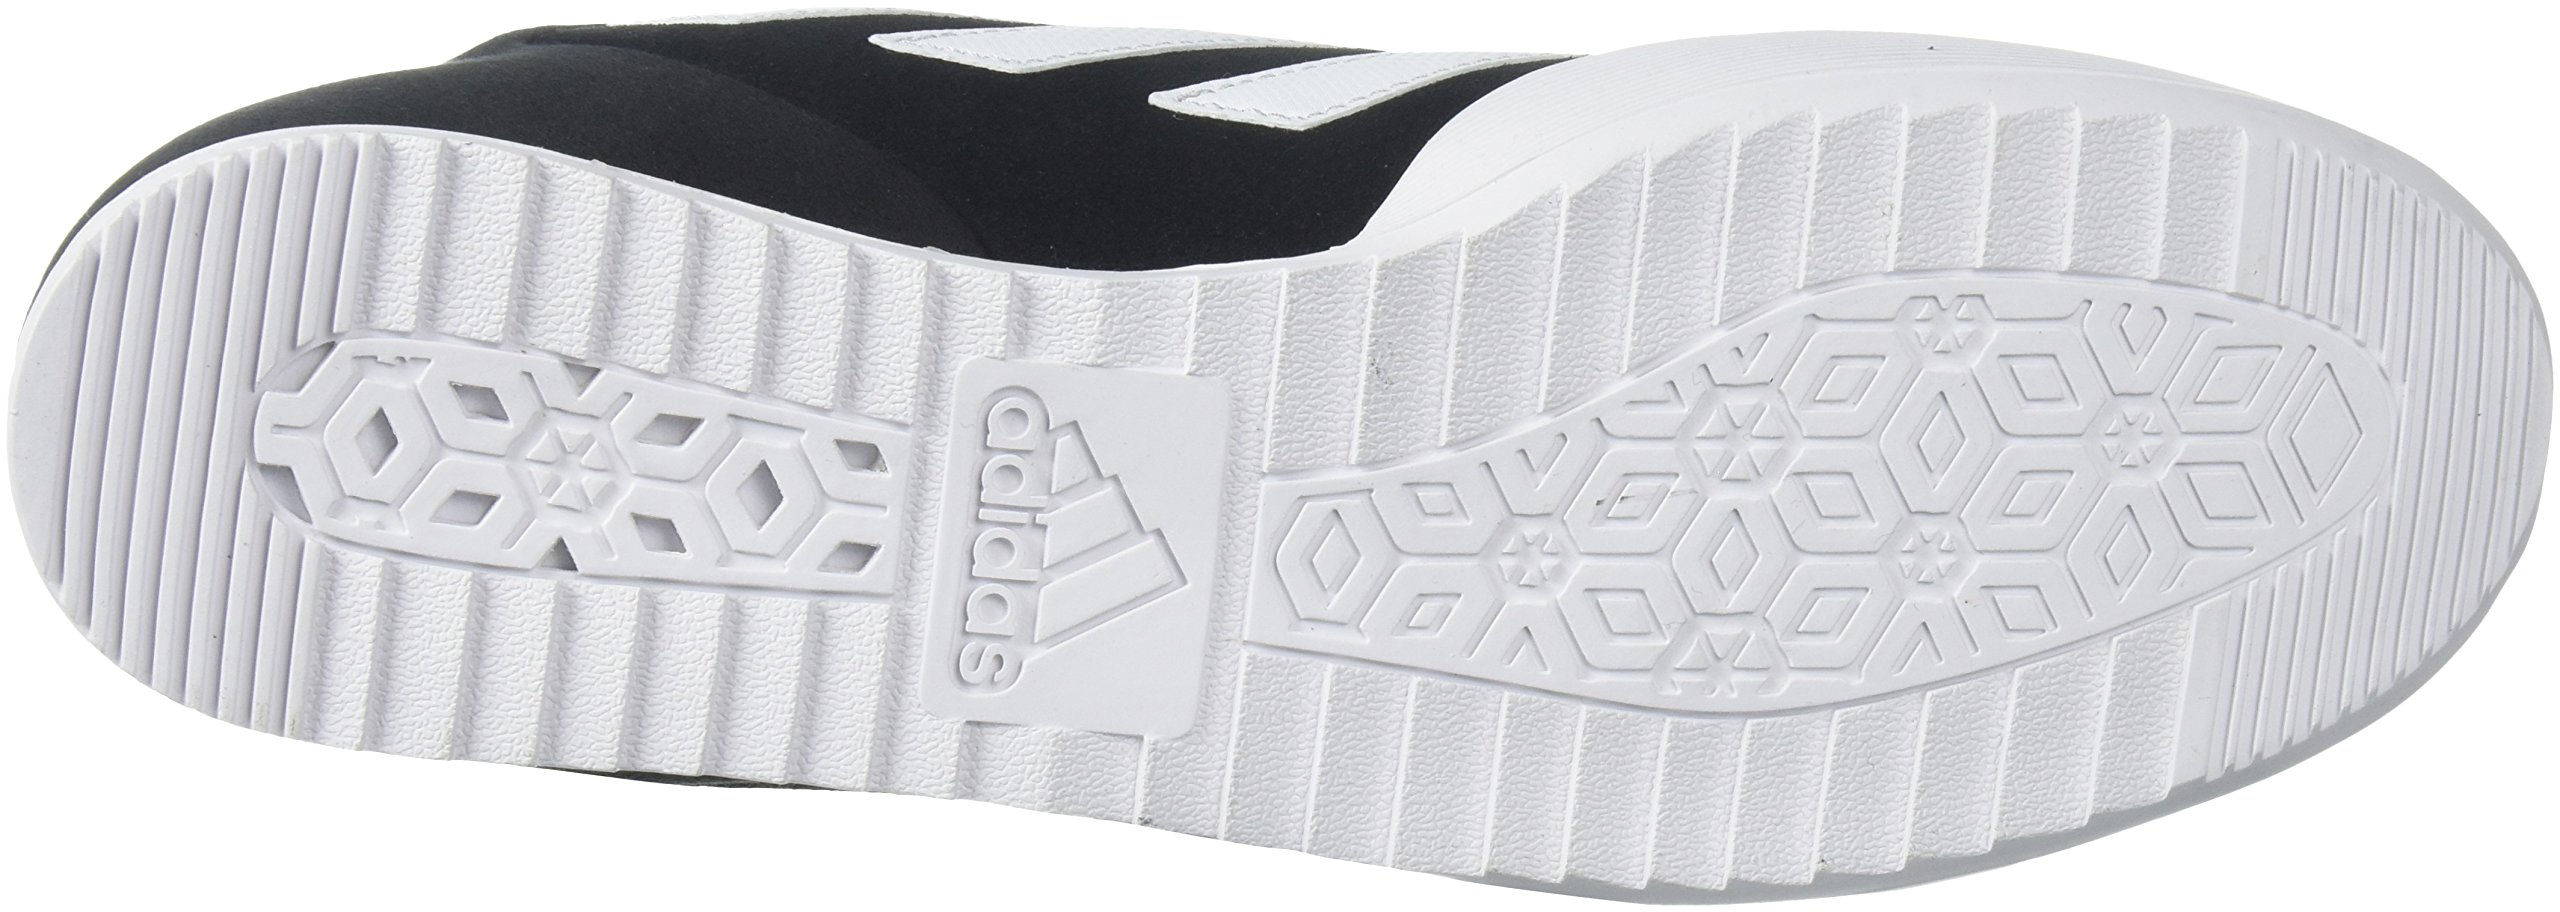 adidas Men's Copa Super Soccer Shoe, Black/White/Power Red, 9 M US by adidas (Image #3)